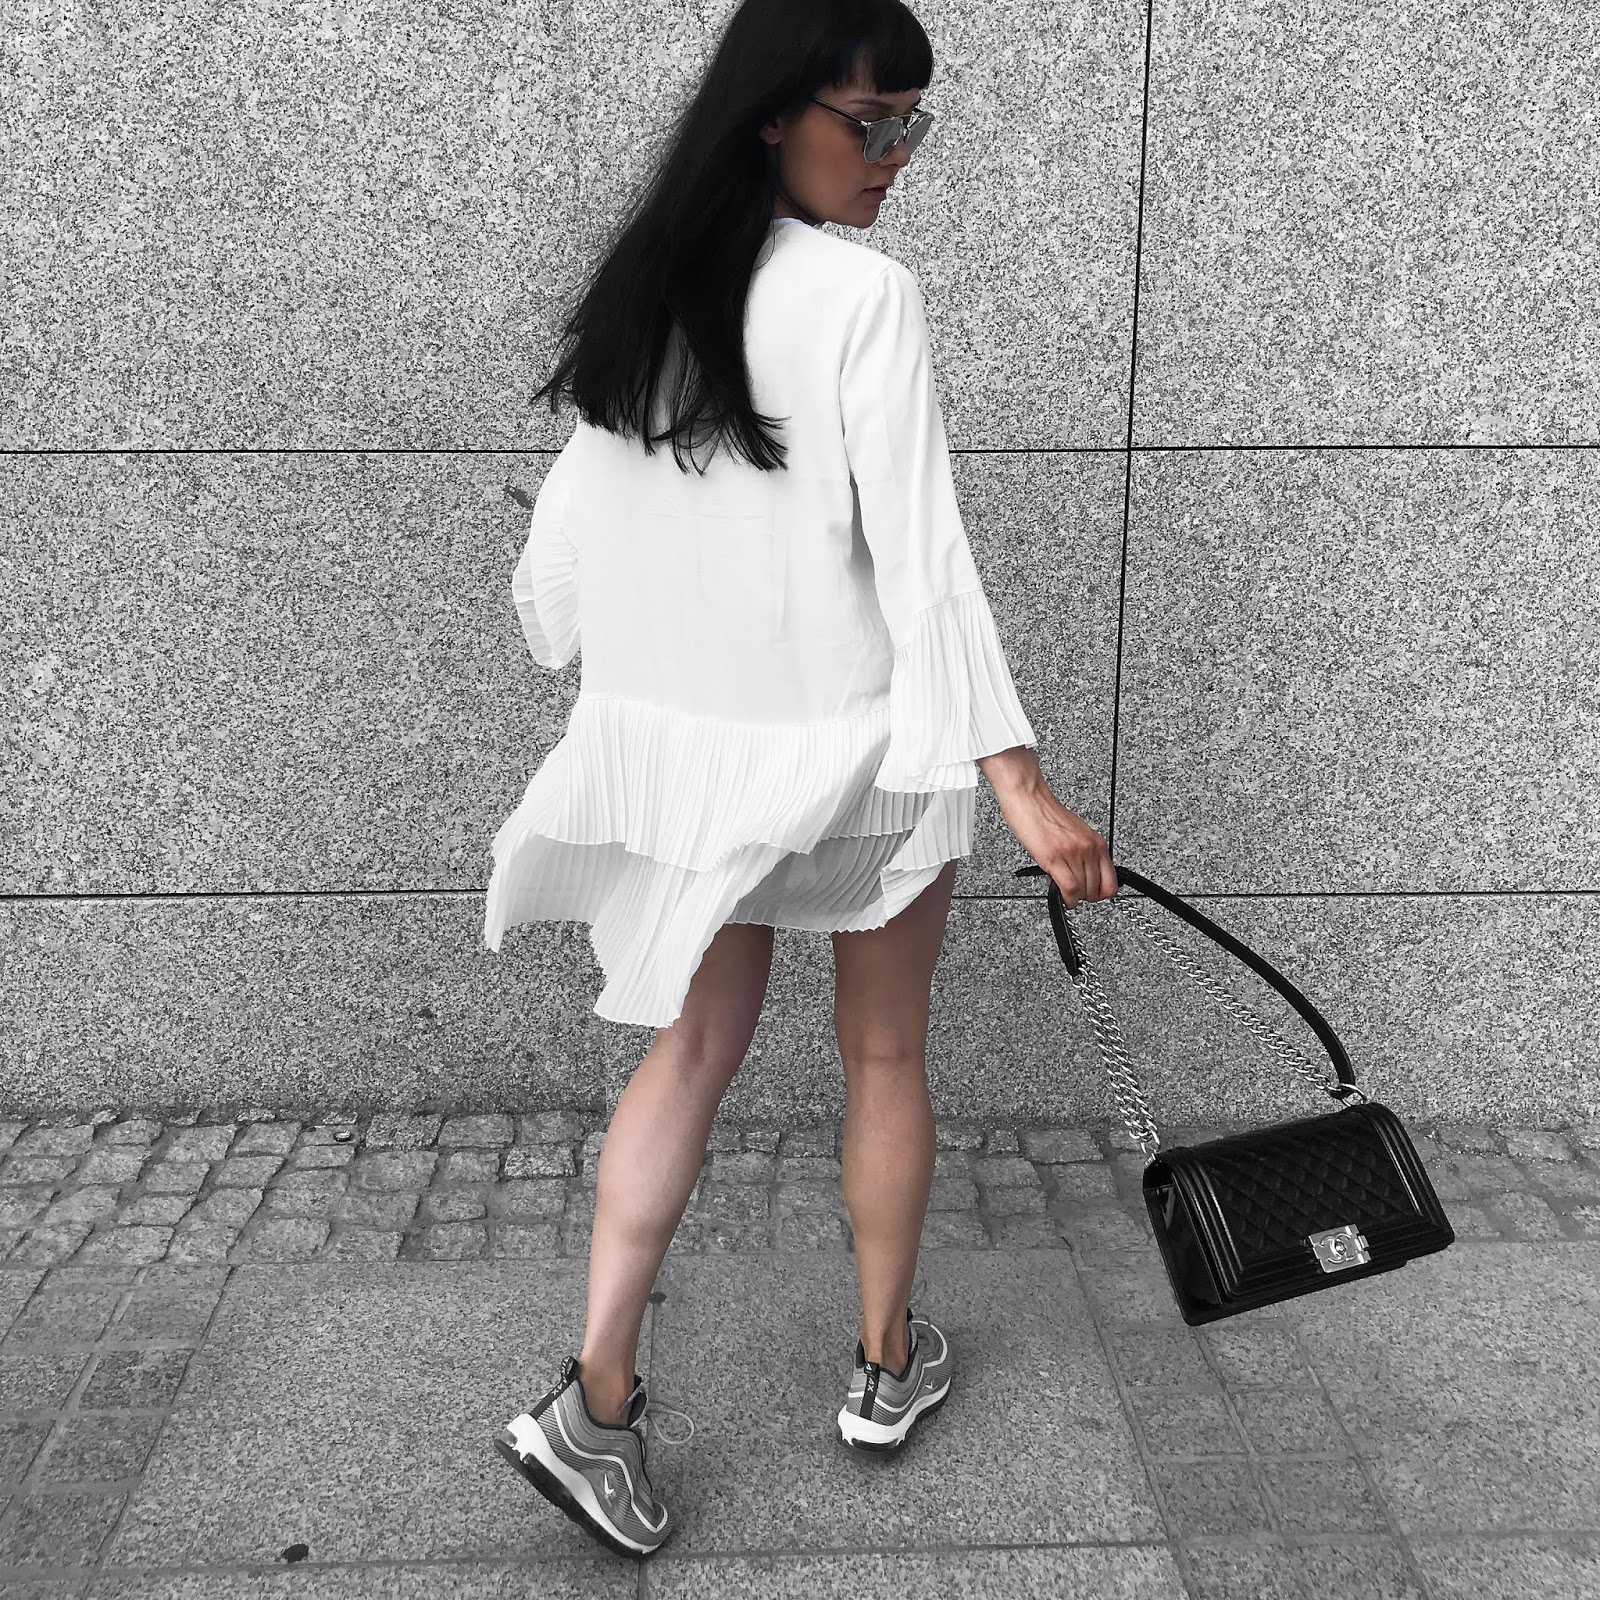 OOTD NIKE AIR MAX 97' ULTRA 17 THE WILLOW IT GIRL